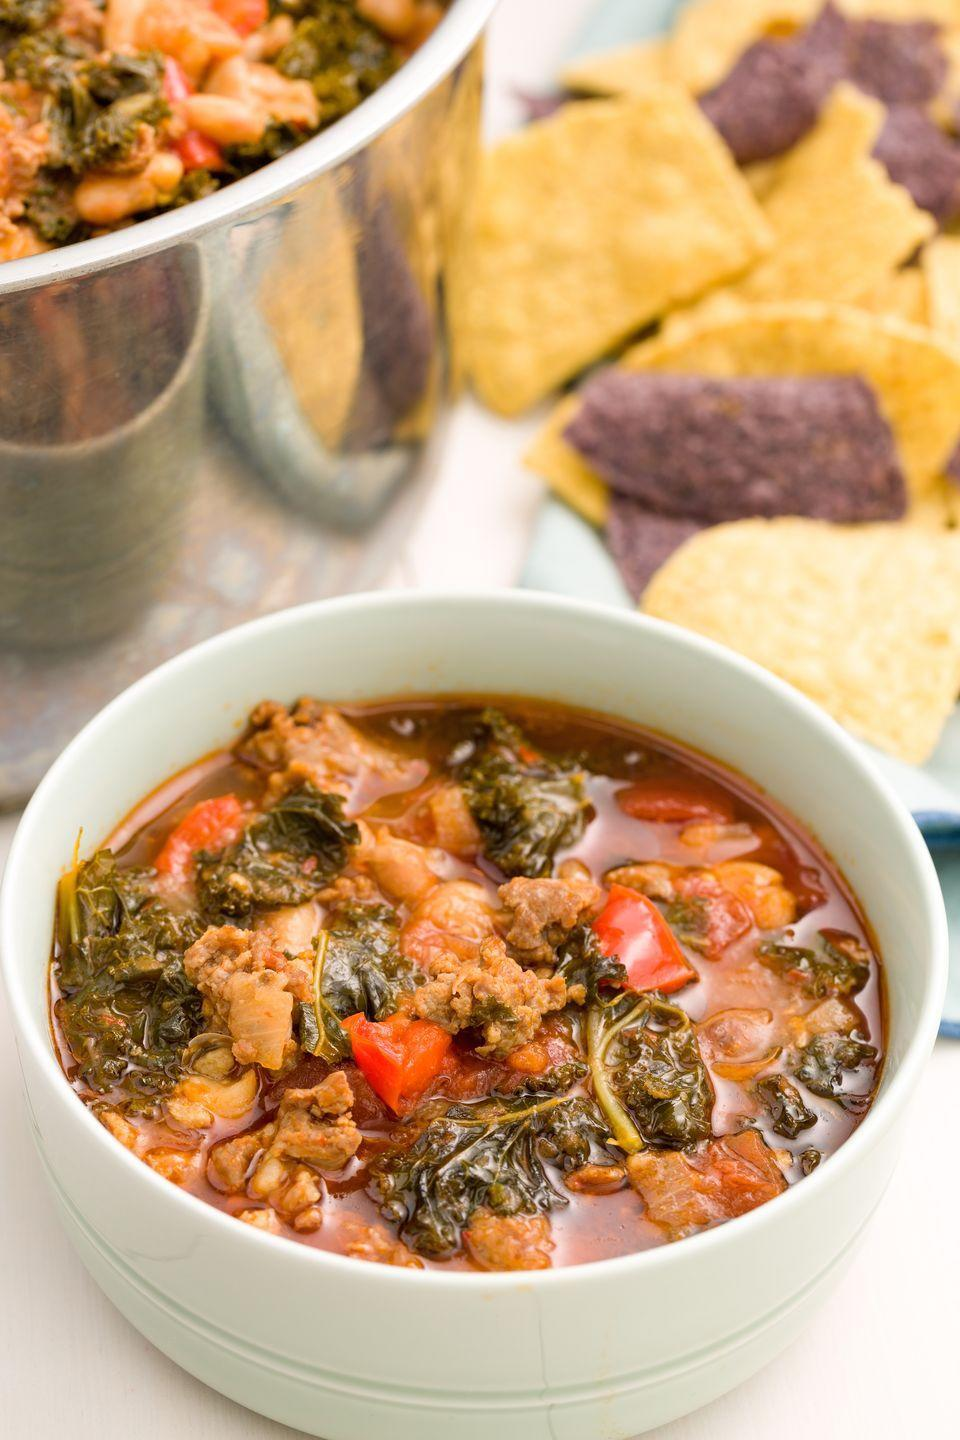 """<p>This Italian-inspired chili is packed with spicy turkey sausage and leafy kale for a tomato-y chili.</p><p>Get the recipe from <a href=""""https://www.redbookmag.com/cooking/recipe-ideas/recipes/a45520/spicy-turkey-sausage-kale-chili-recipe/"""" rel=""""nofollow noopener"""" target=""""_blank"""" data-ylk=""""slk:Delish"""" class=""""link rapid-noclick-resp"""">Delish</a>.</p>"""